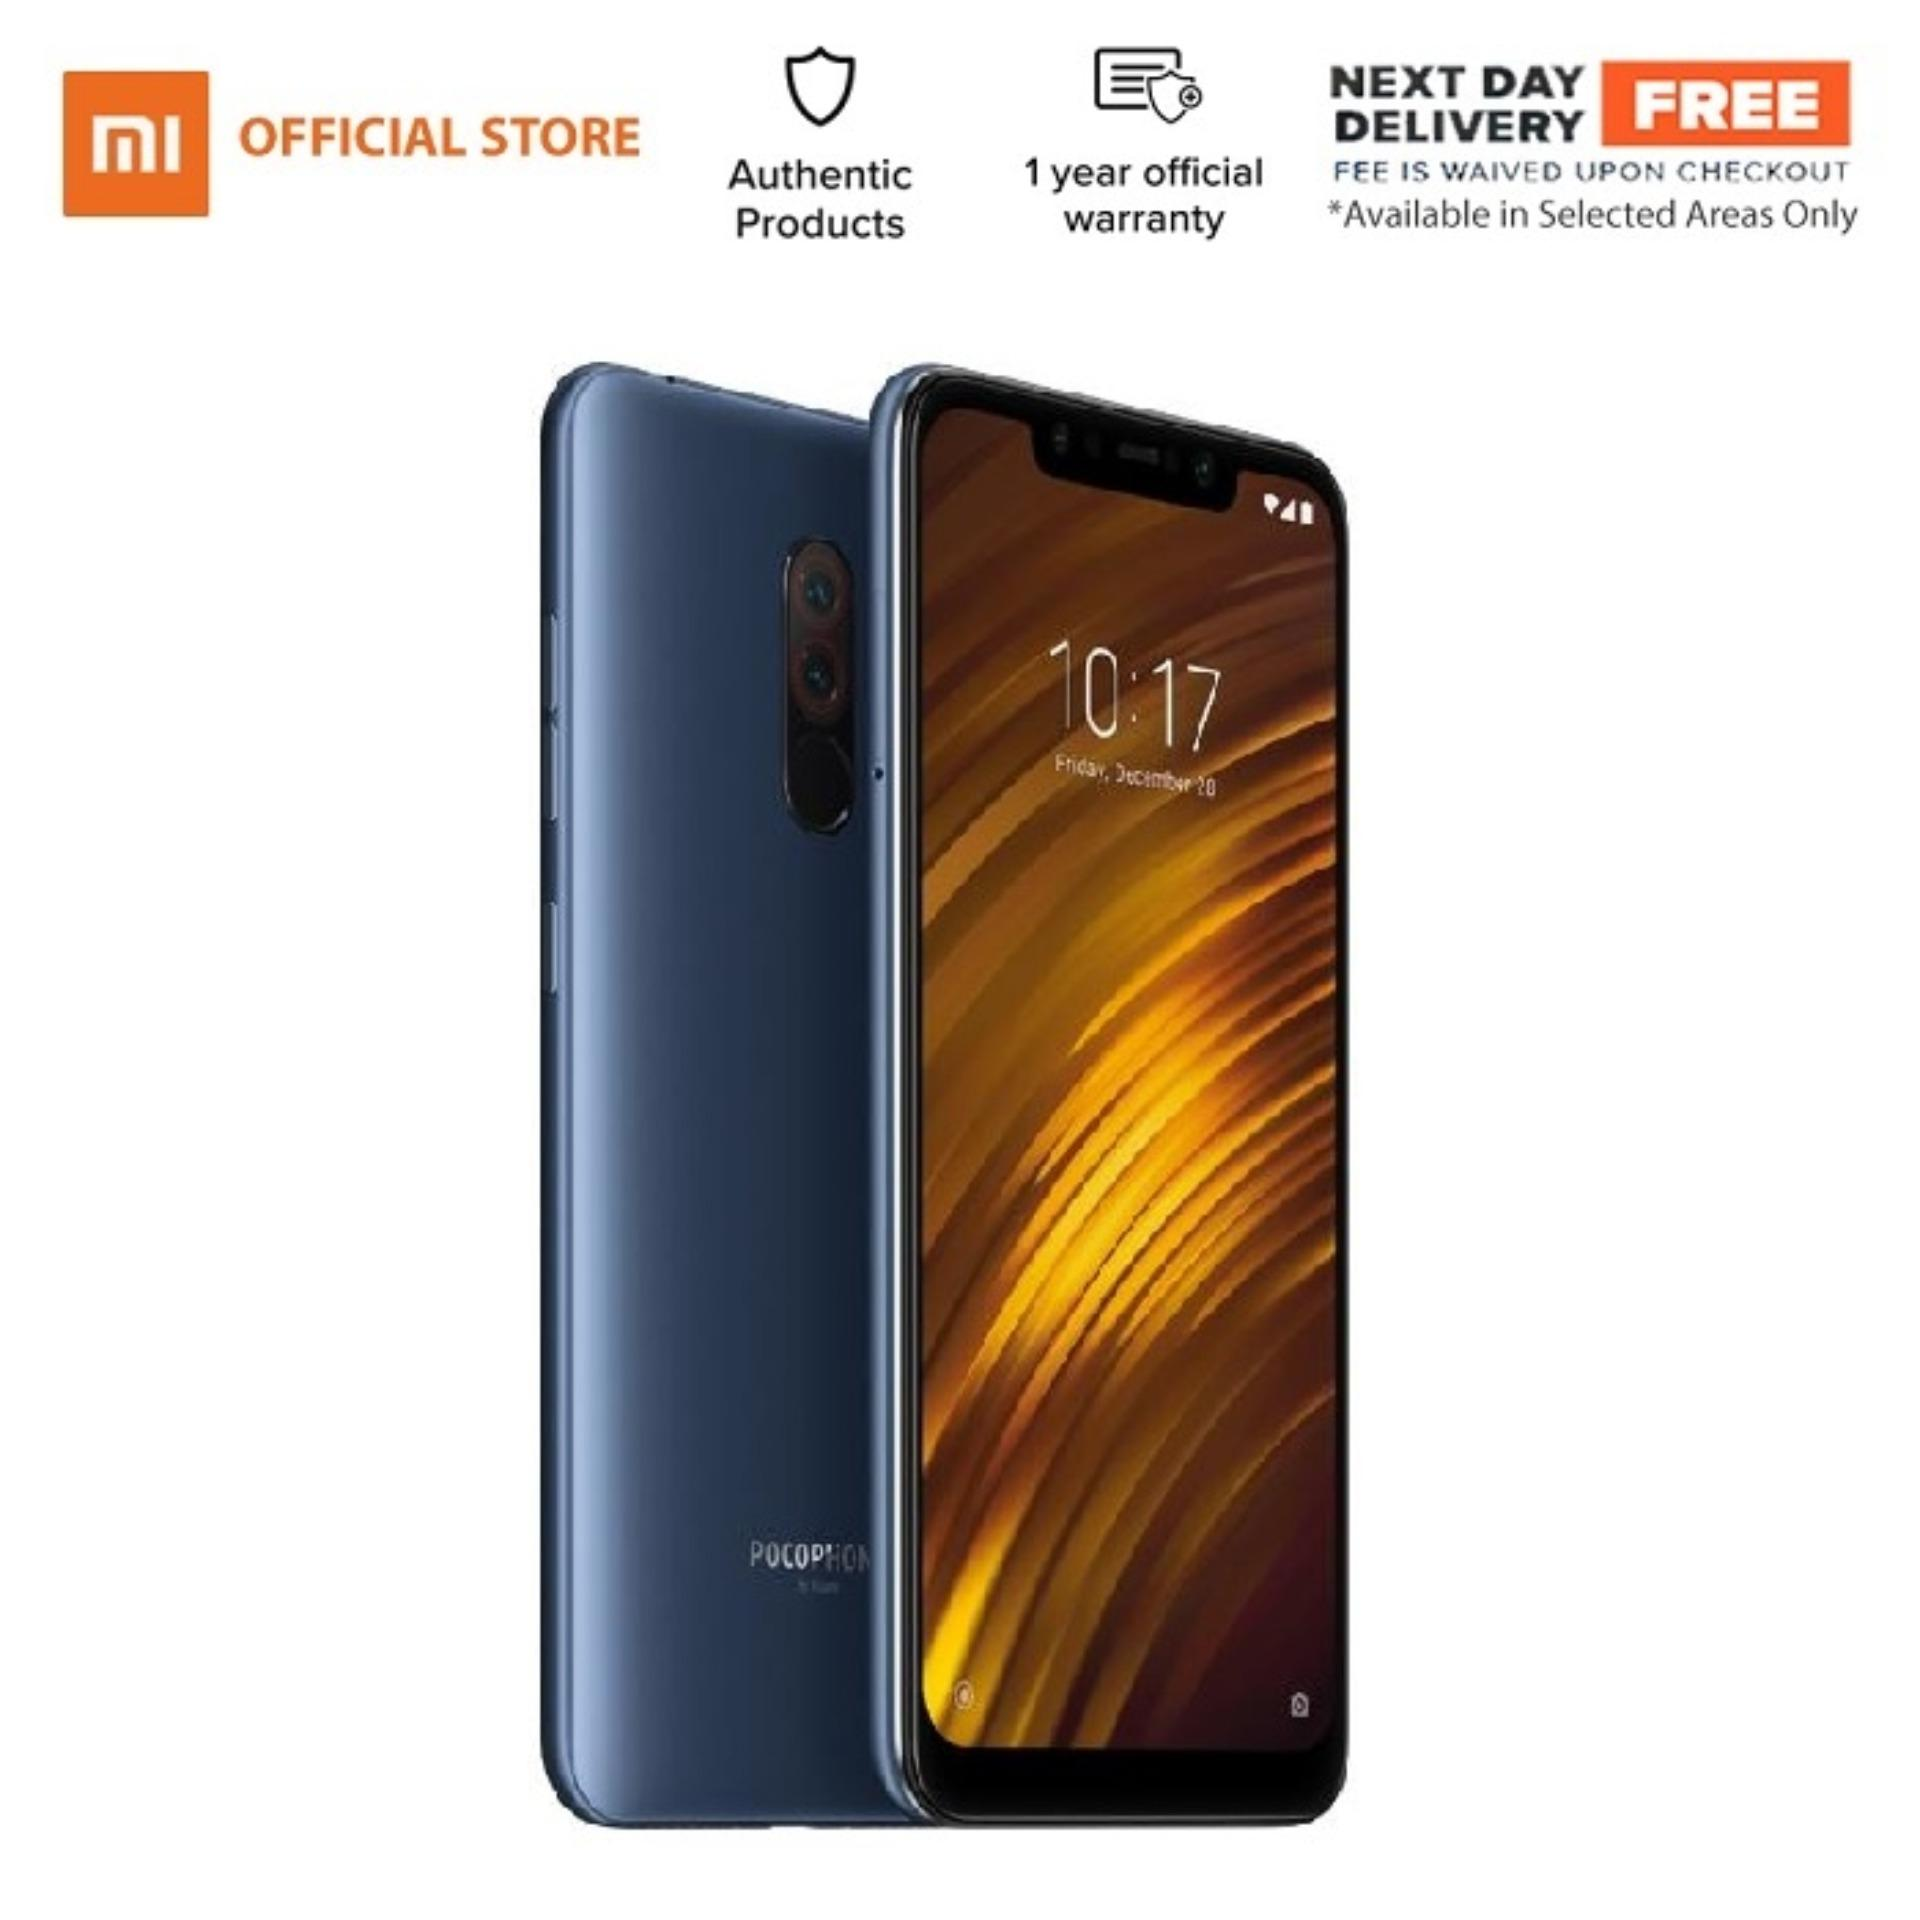 Cheap Xiaomi Phone Products For Sale Lazada Philippines Redmi Pro Gold Pocophone F1 6gb Ram 128gb Rom